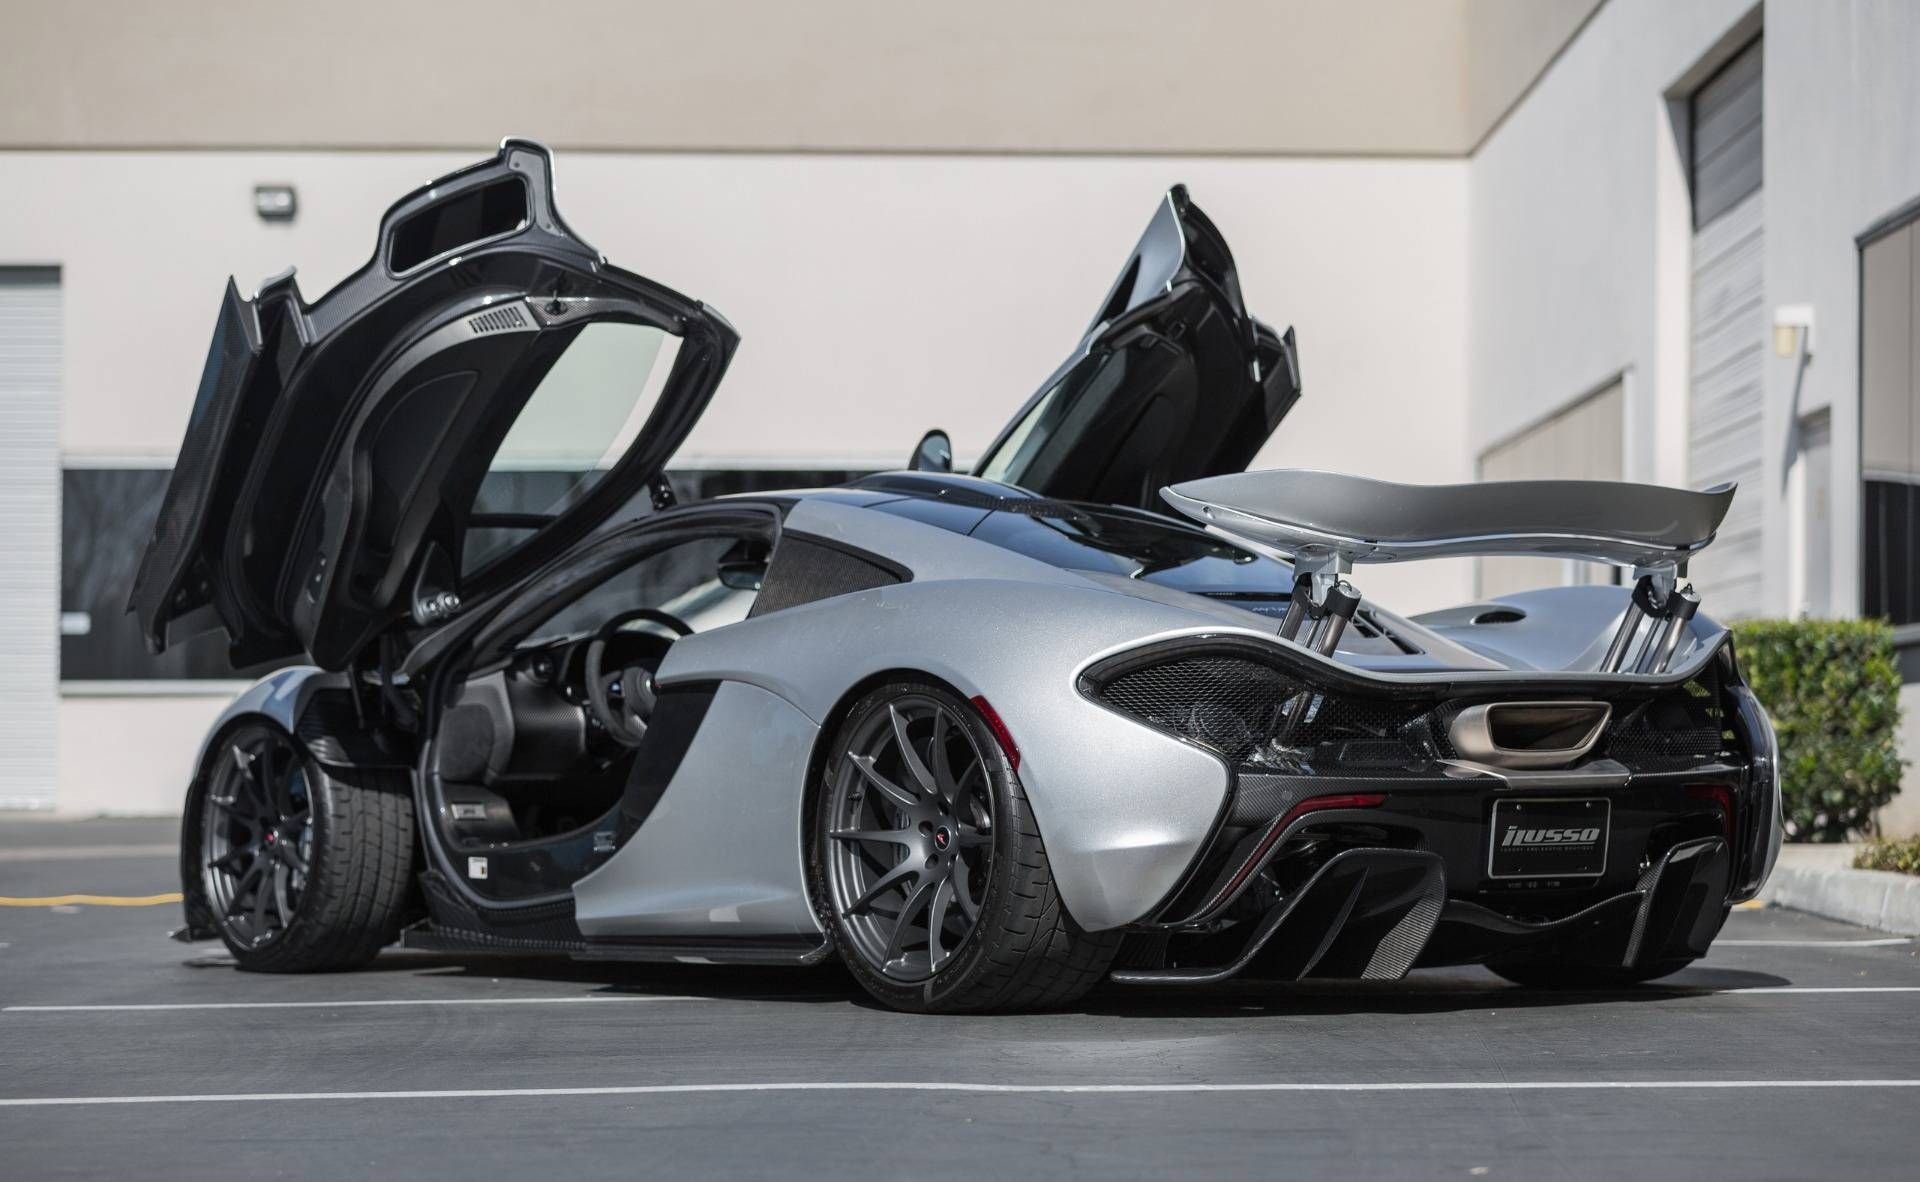 Supernova Silver Mclaren P1 For Sale In The Us At 2 399 000 Gtspirit Mclaren P1 Mclaren Cars Mclaren